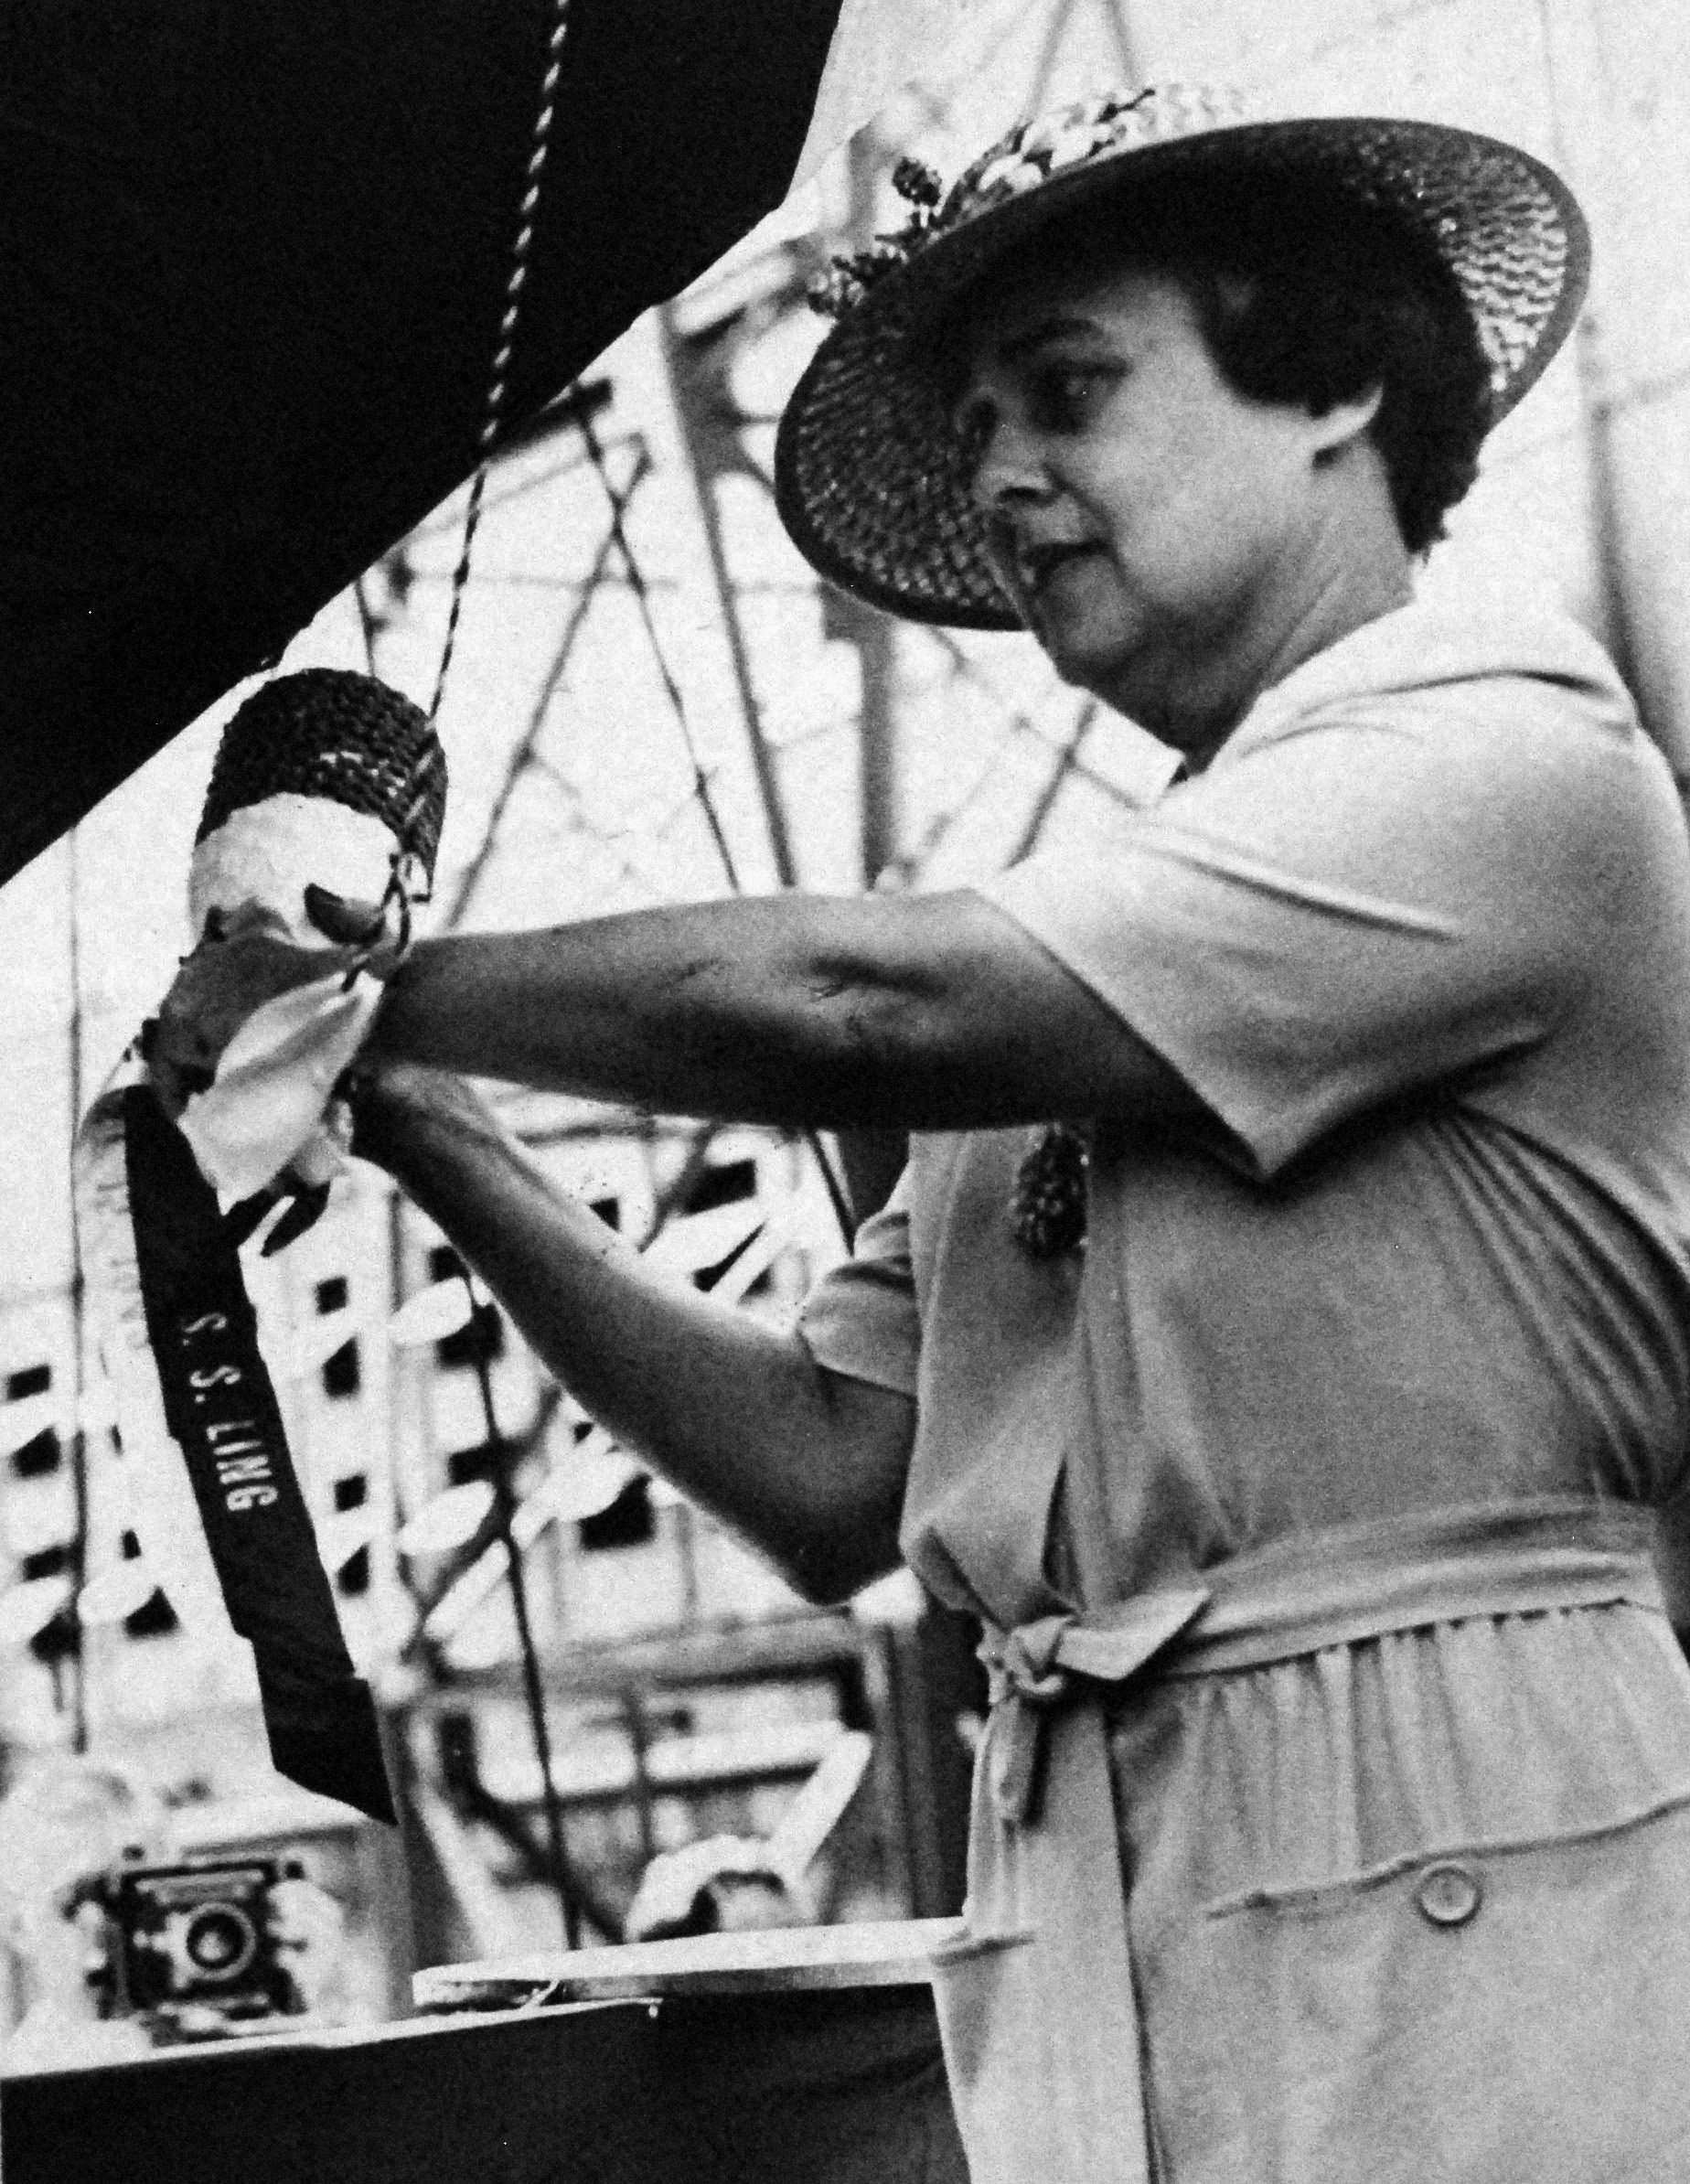 Mrs. E.J. Foy prepares to christen the ship. A Navy tradition dating back to the branch's earliest days, the sponsor of a ship, traditionally female, is thought to bring a ship good luck, and are permanent members of the crew.